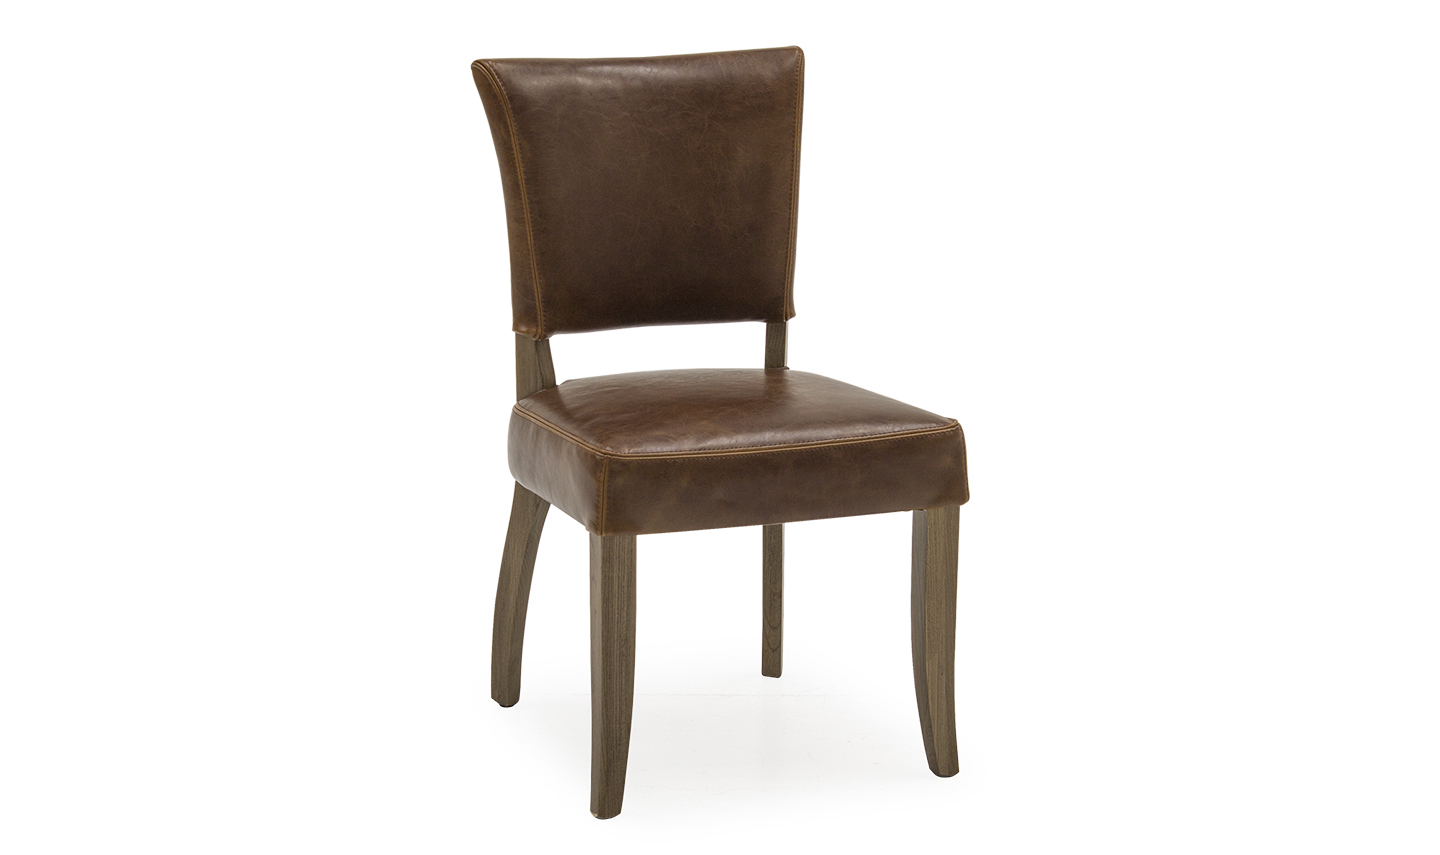 Avondale Dining Chair - Tan Brown